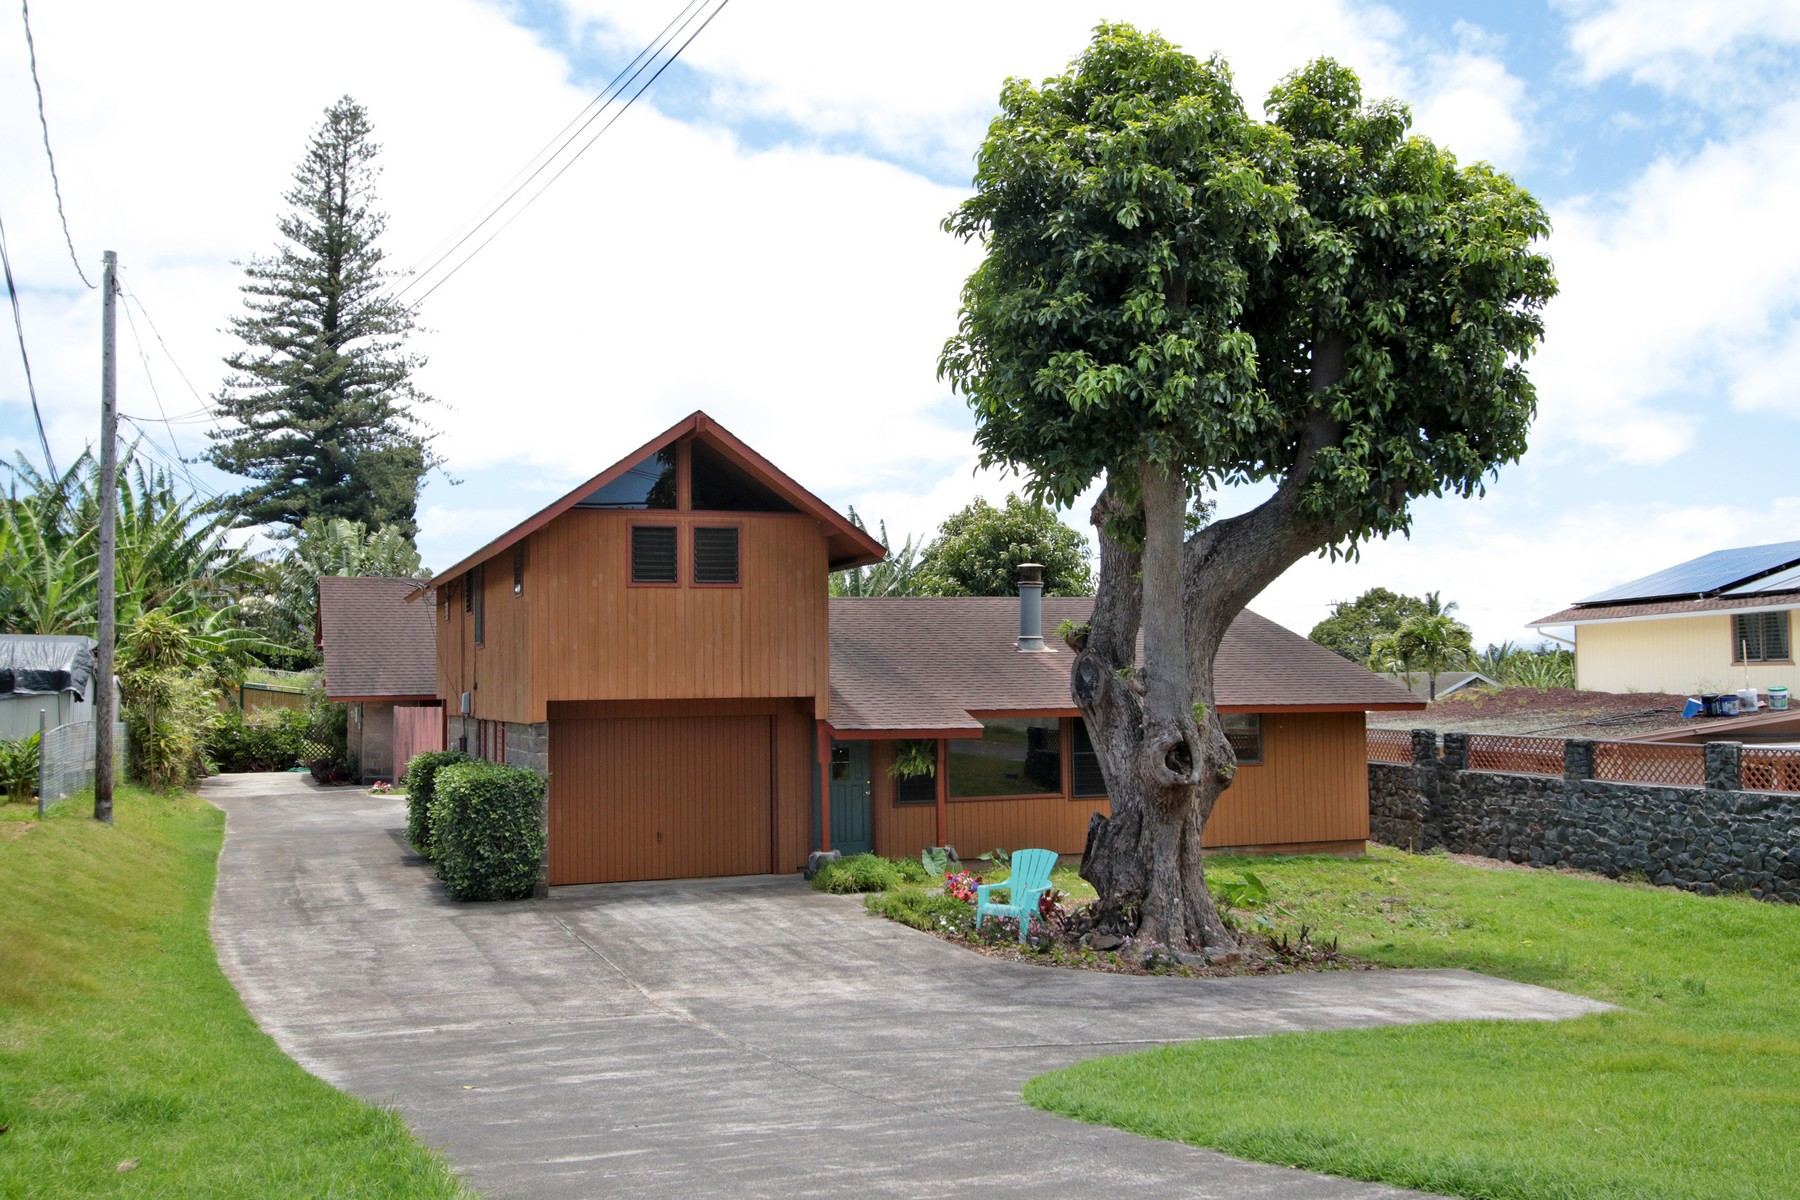 Single Family Home for Sale at Charming House and Cottage in Makawao 11 Keola Place Makawao, Hawaii, 96768 United States